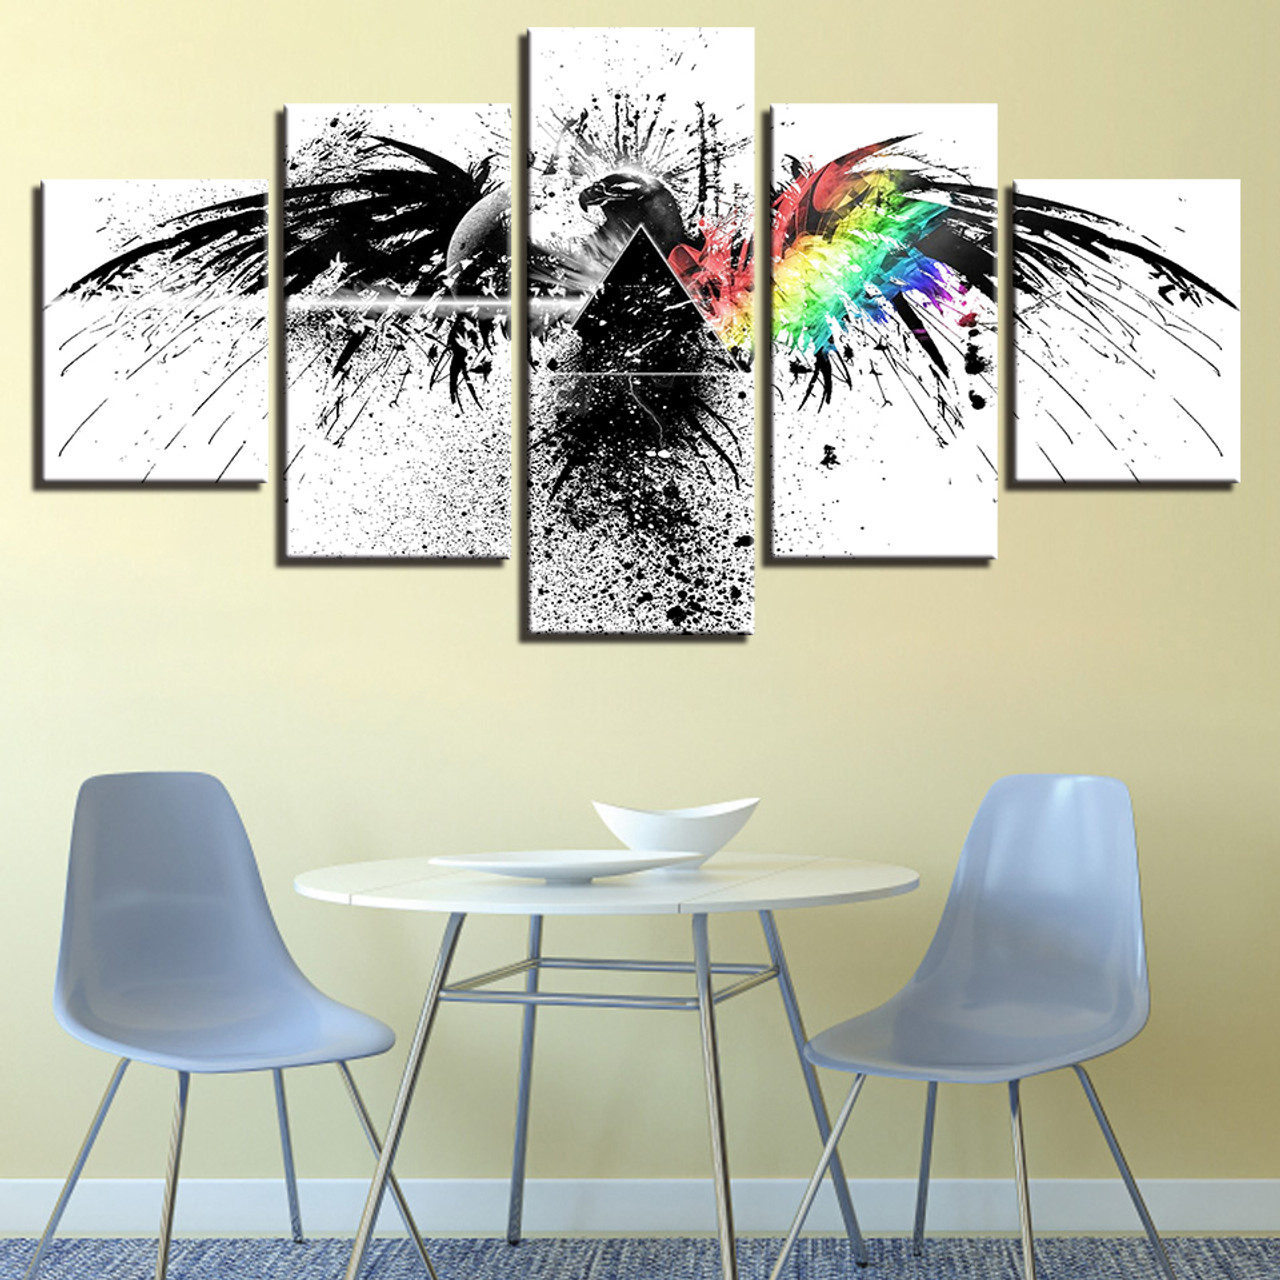 Canvas Pictures Wall Art Home Decor Framework Hd Prints 5 Piece Pink Floyd Rock Music Painting Living Room Abstract Eagle Poster Onshopdeals Com